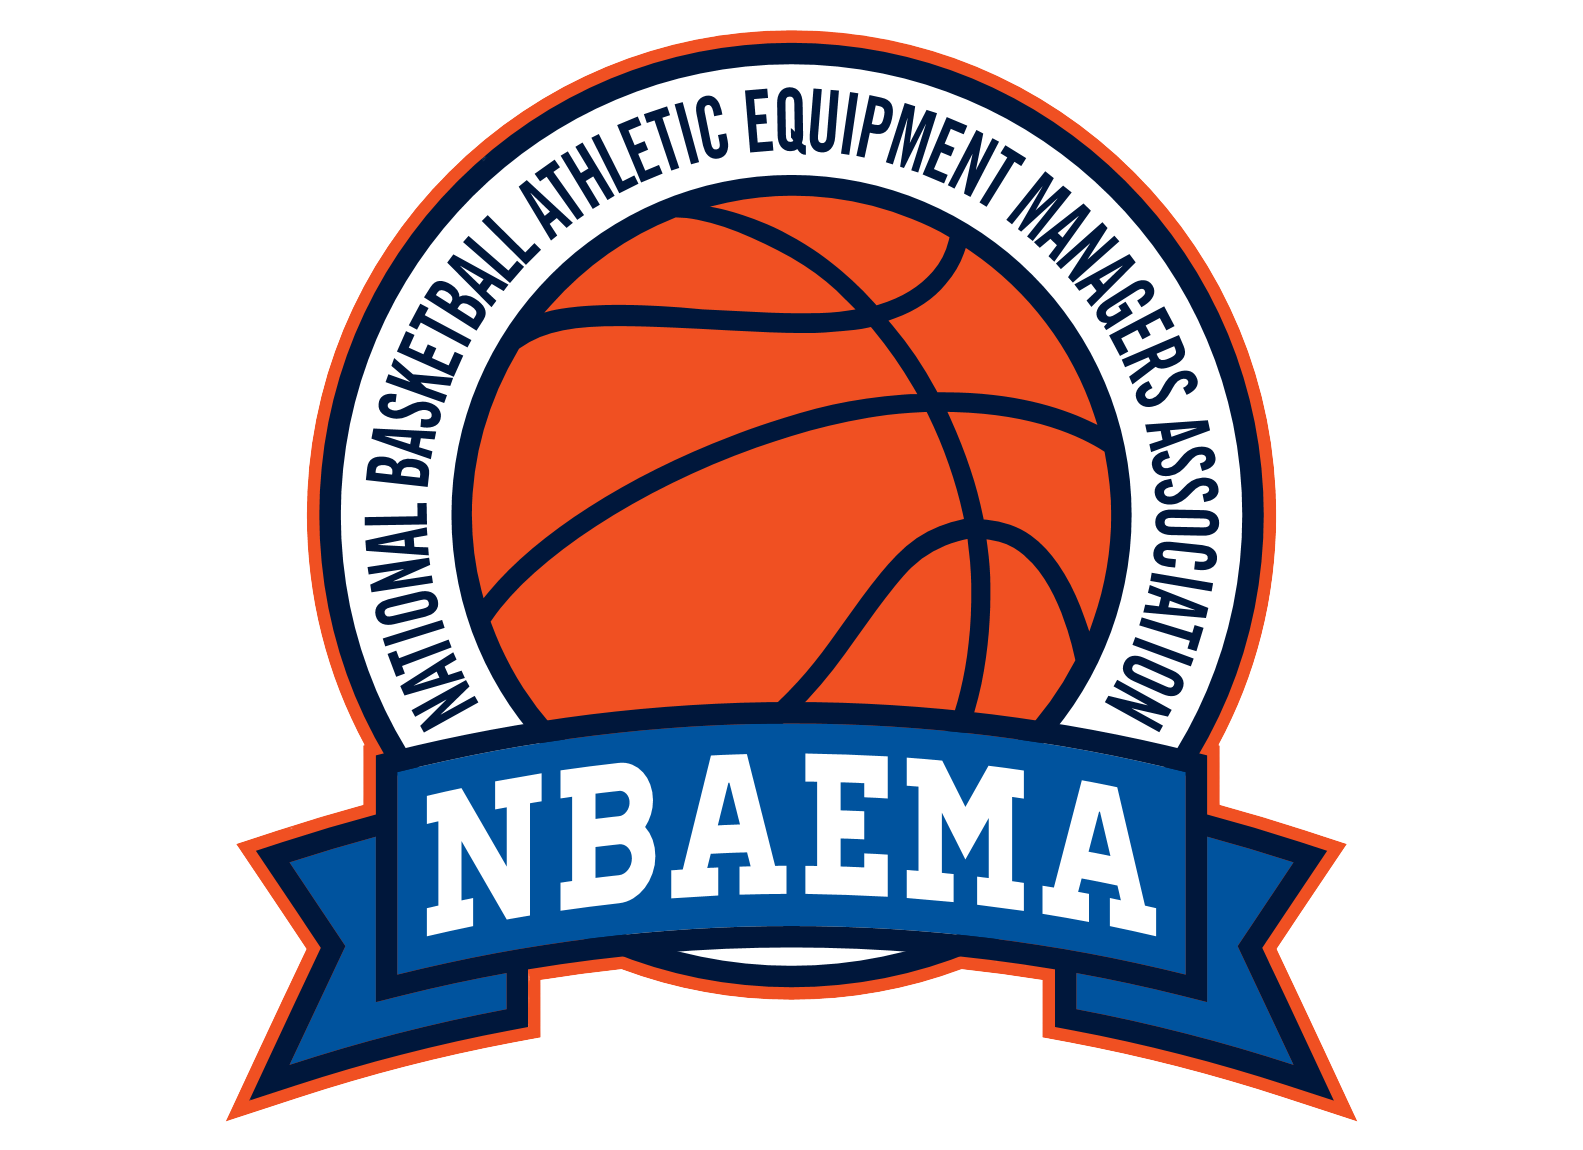 National Basketball Equipment Manager Association